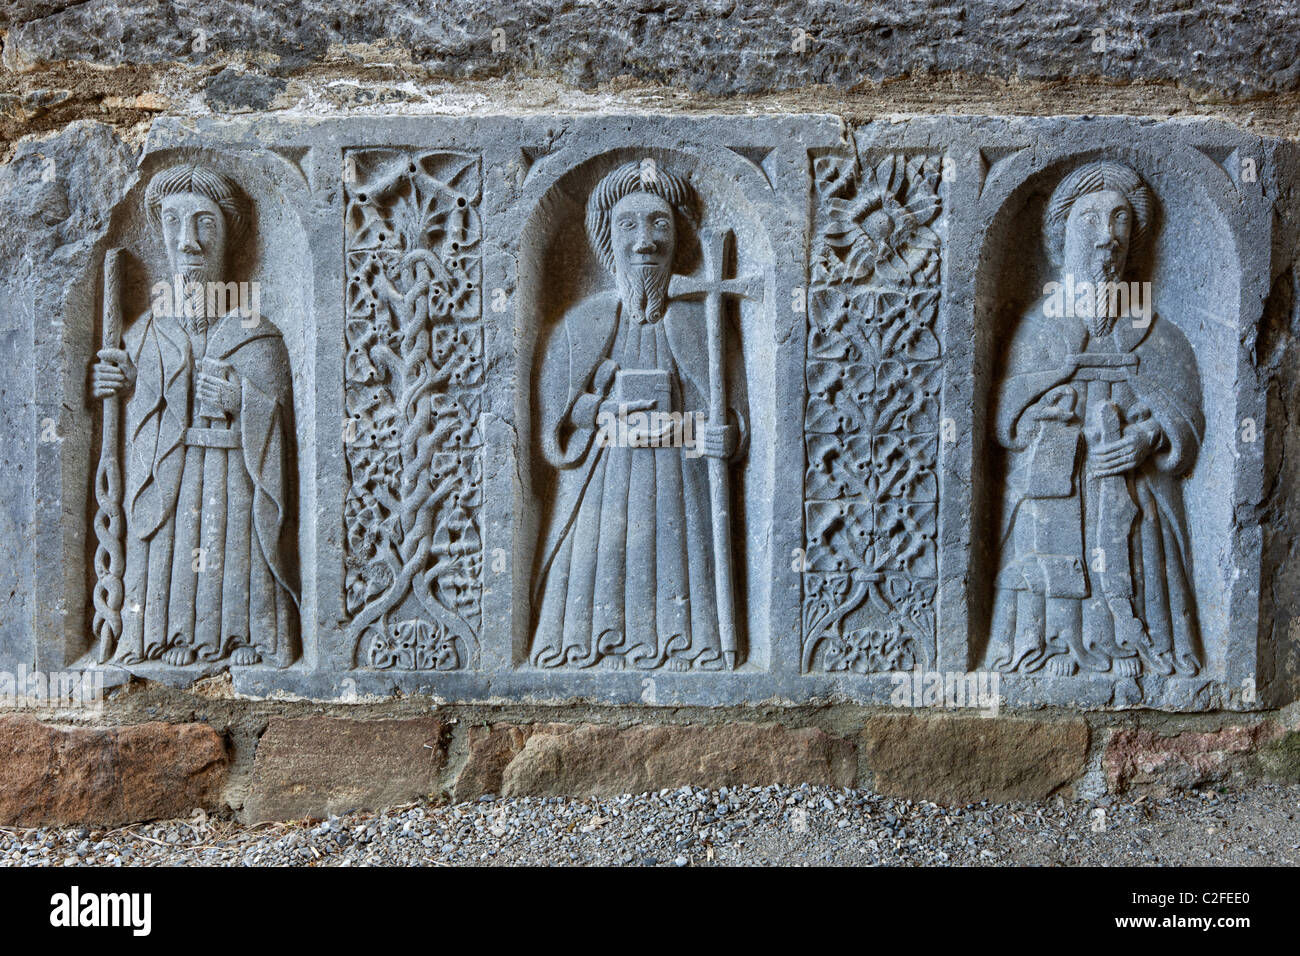 Tomb carvings inside 12th century Cistercian Romanesque church - Stock Image